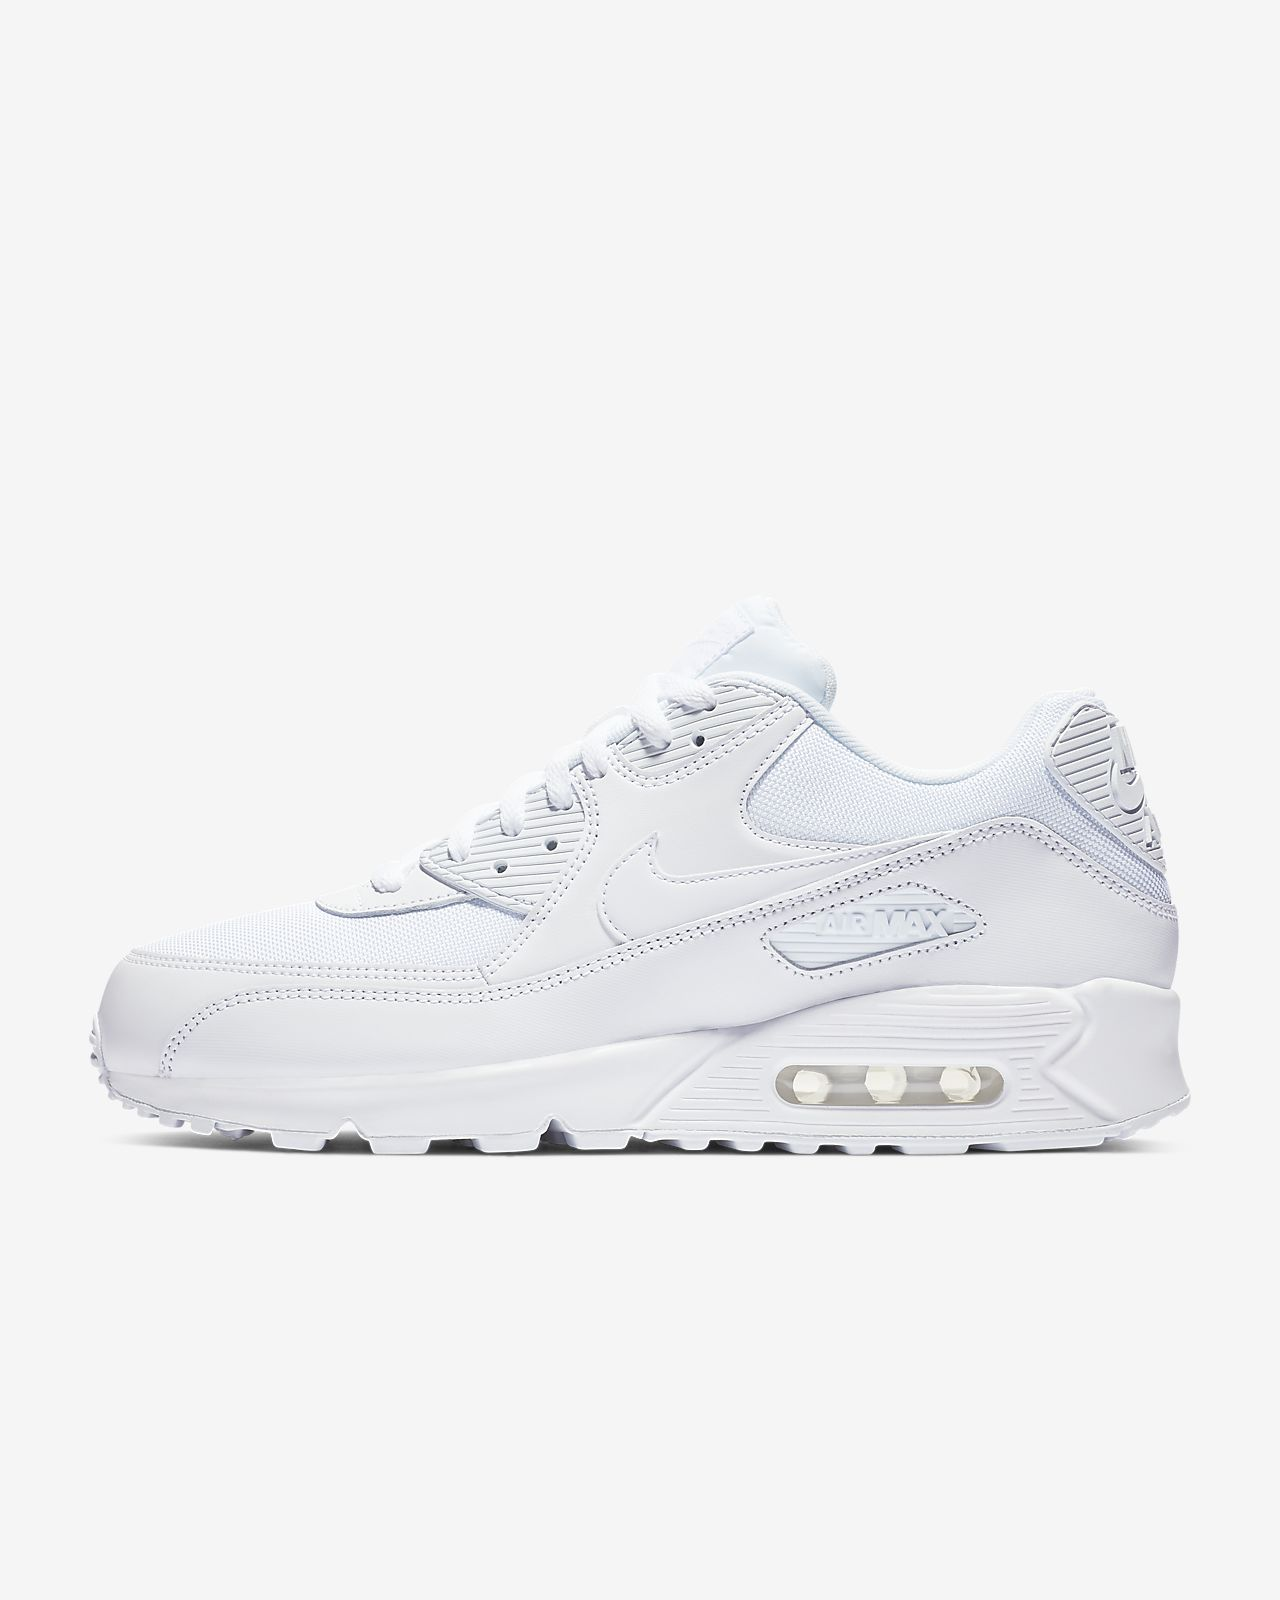 07c4b948 Мужские кроссовки Nike Air Max 90 Essential. Nike.com RU